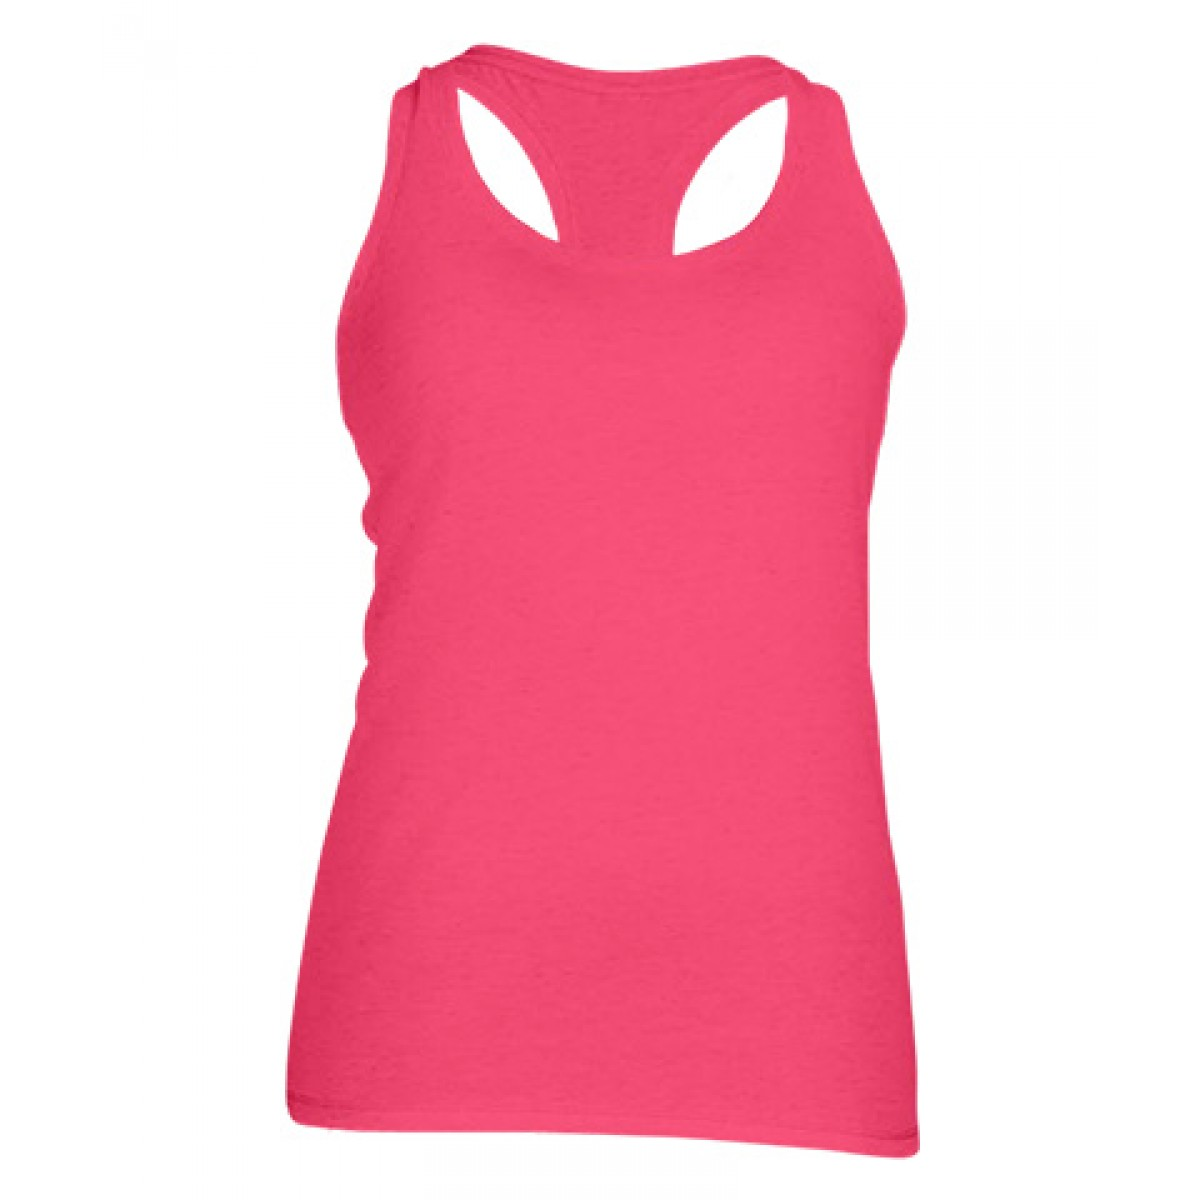 Ladies' Performance Racerback Tank-Safety Pink-L